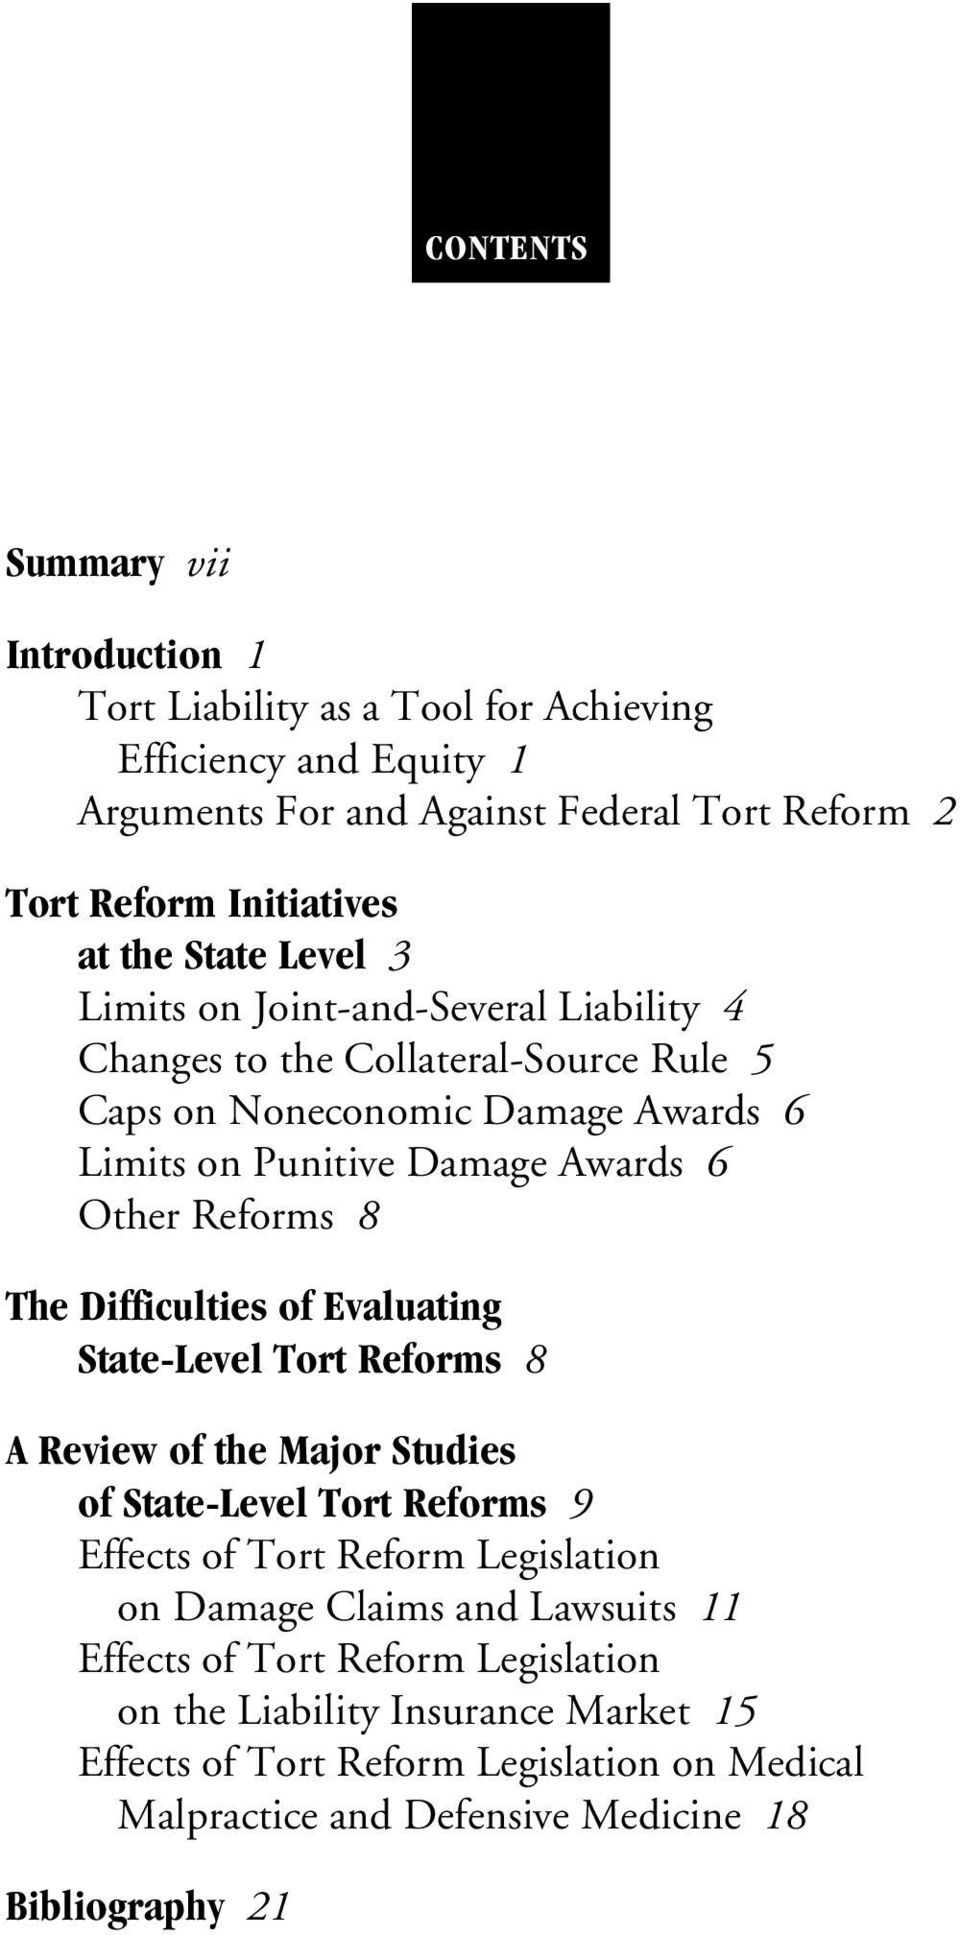 8 The Difficulties of Evaluating State-Level Tort Reforms 8 A Review of the Major Studies of State-Level Tort Reforms 9 Effects of Tort Reform Legislation on Damage Claims and